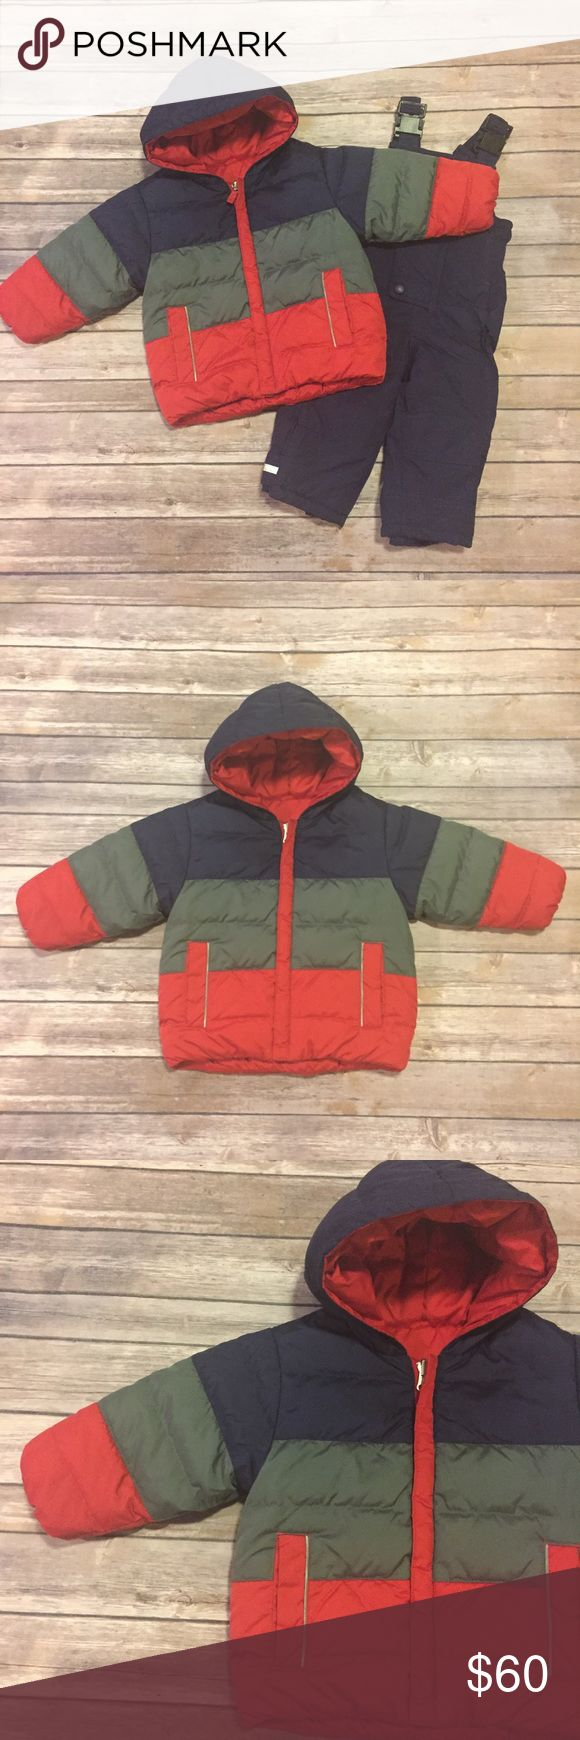 Hanna Andersson Snow Suit, Size 80 Hanna Andersson Snow Suit, Size 80, navy ski bins and reversible, down, hooded ski coat.  Such a cozy set!  Little guy was cozy as ever on the ski hill. ❤ Hanna Andersson Jackets & Coats